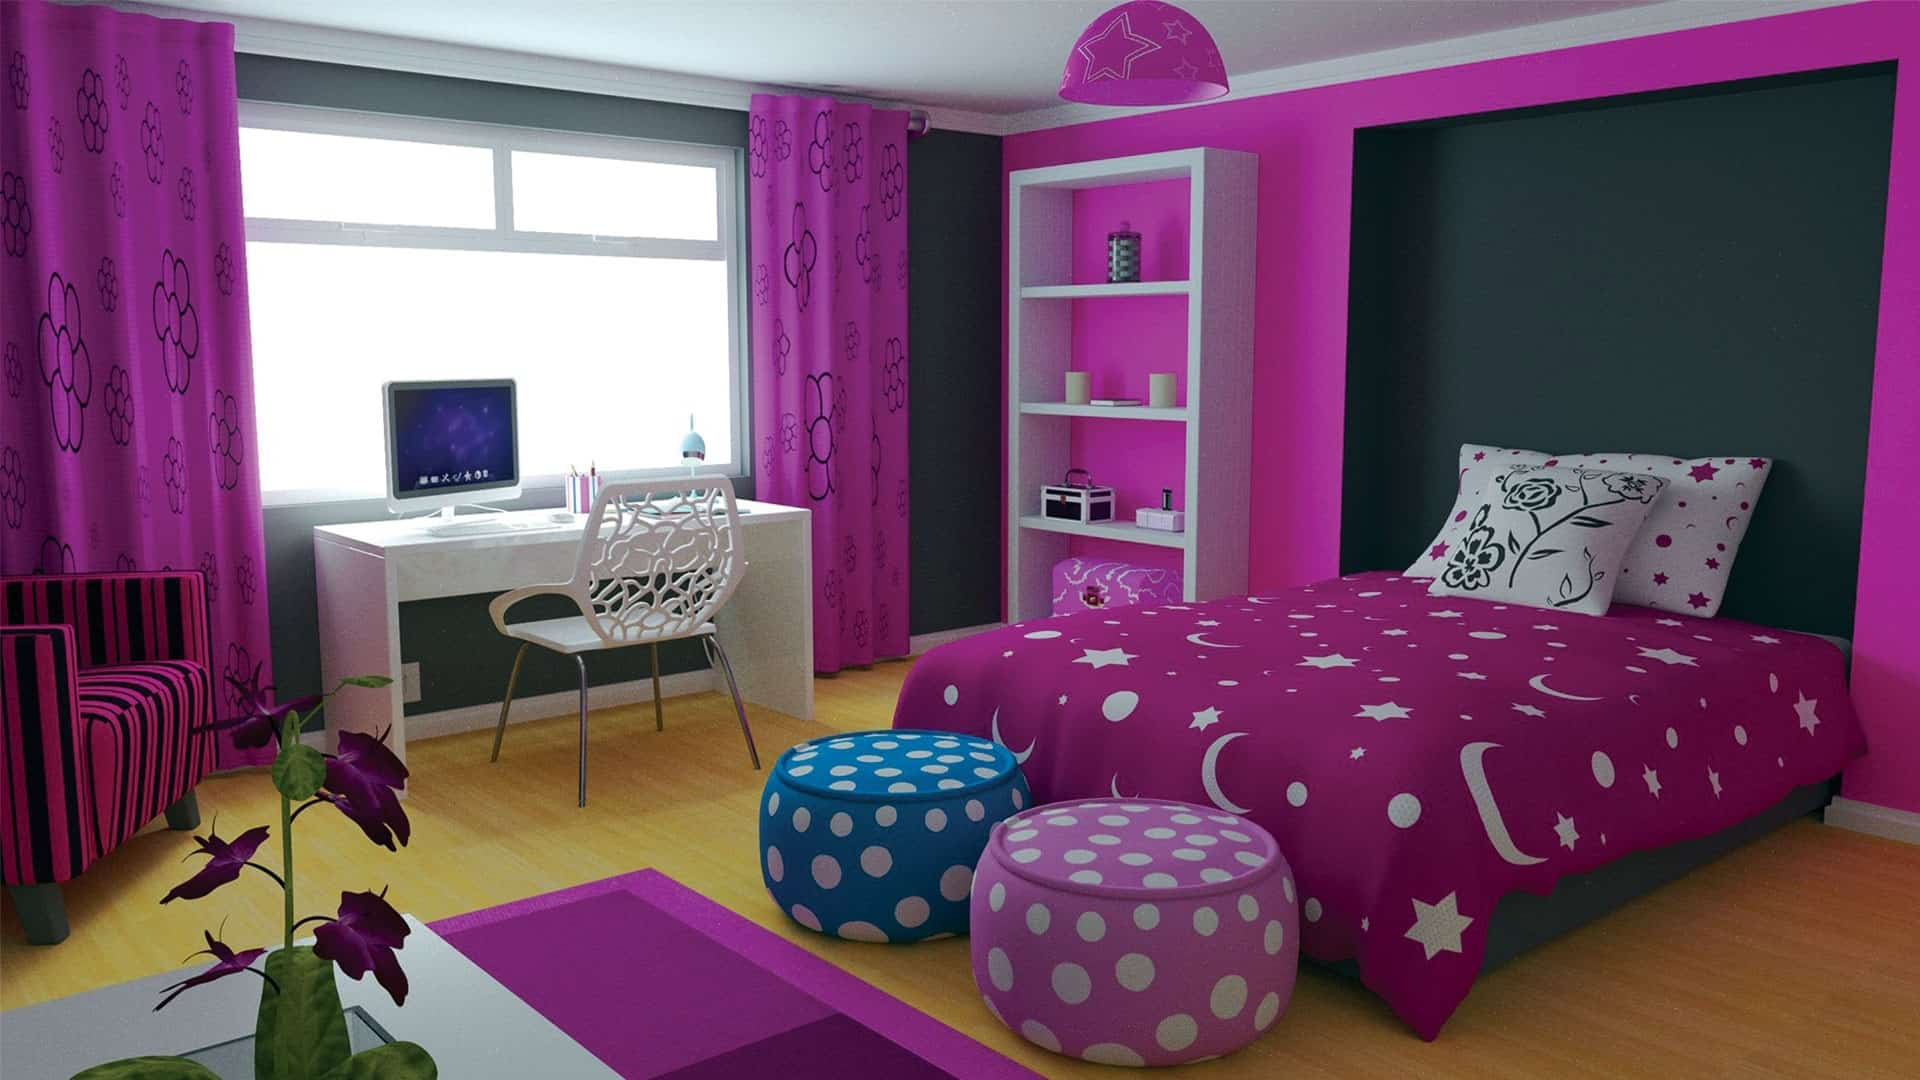 Home decor trends 2017 purple teen room - Girl bed room ...